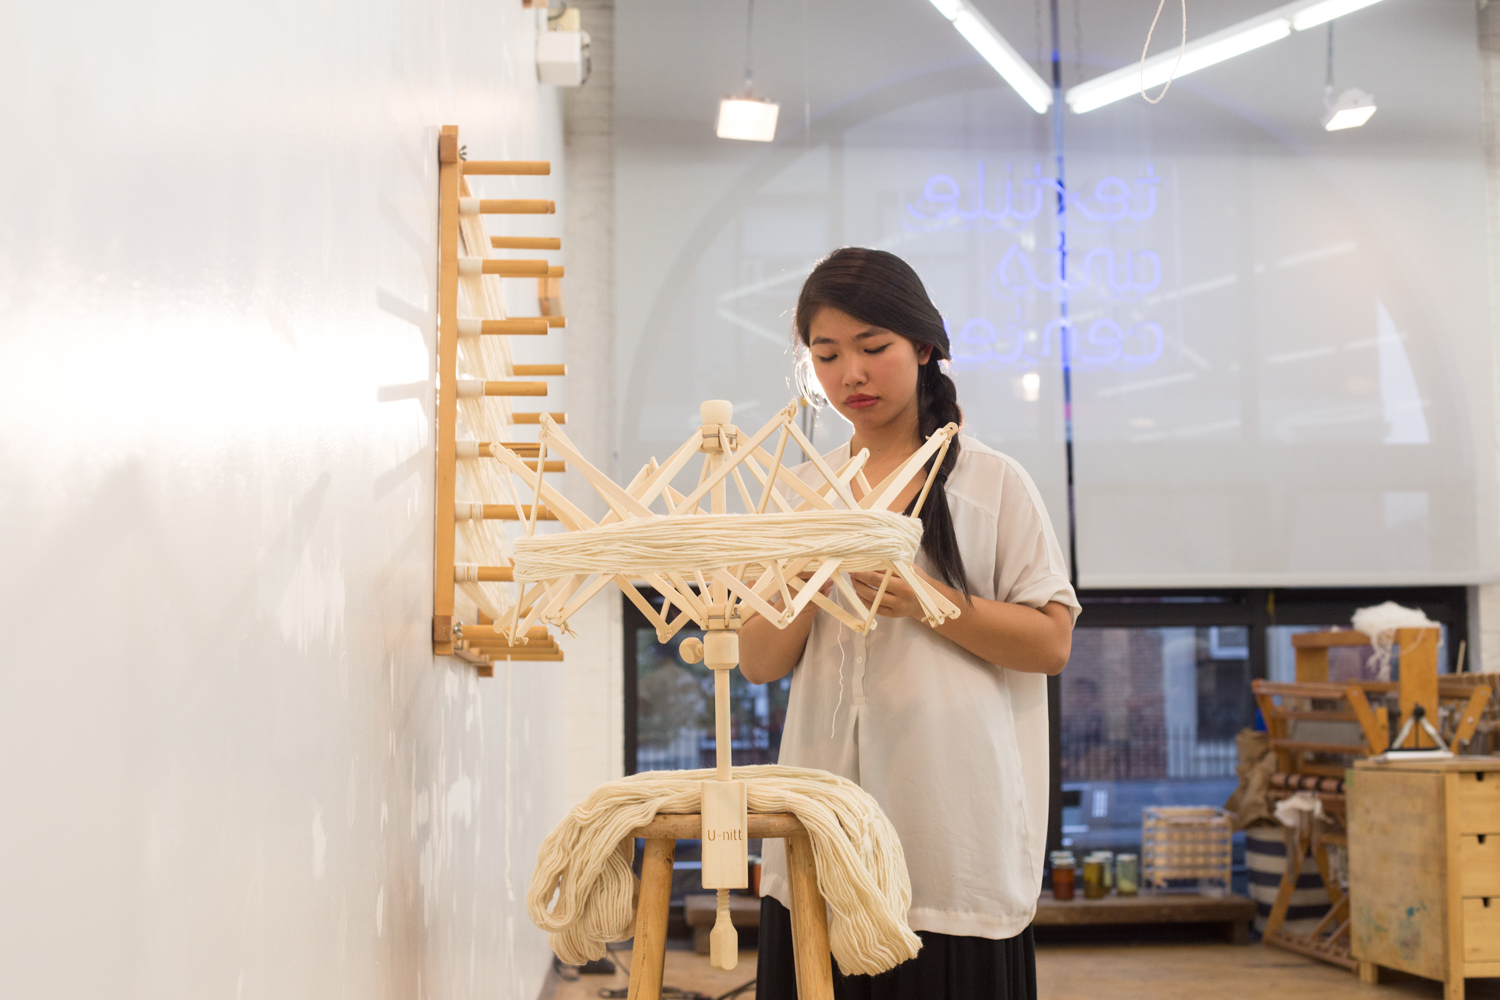 Side view of the artist behind the swift, also known as a yarn winder.